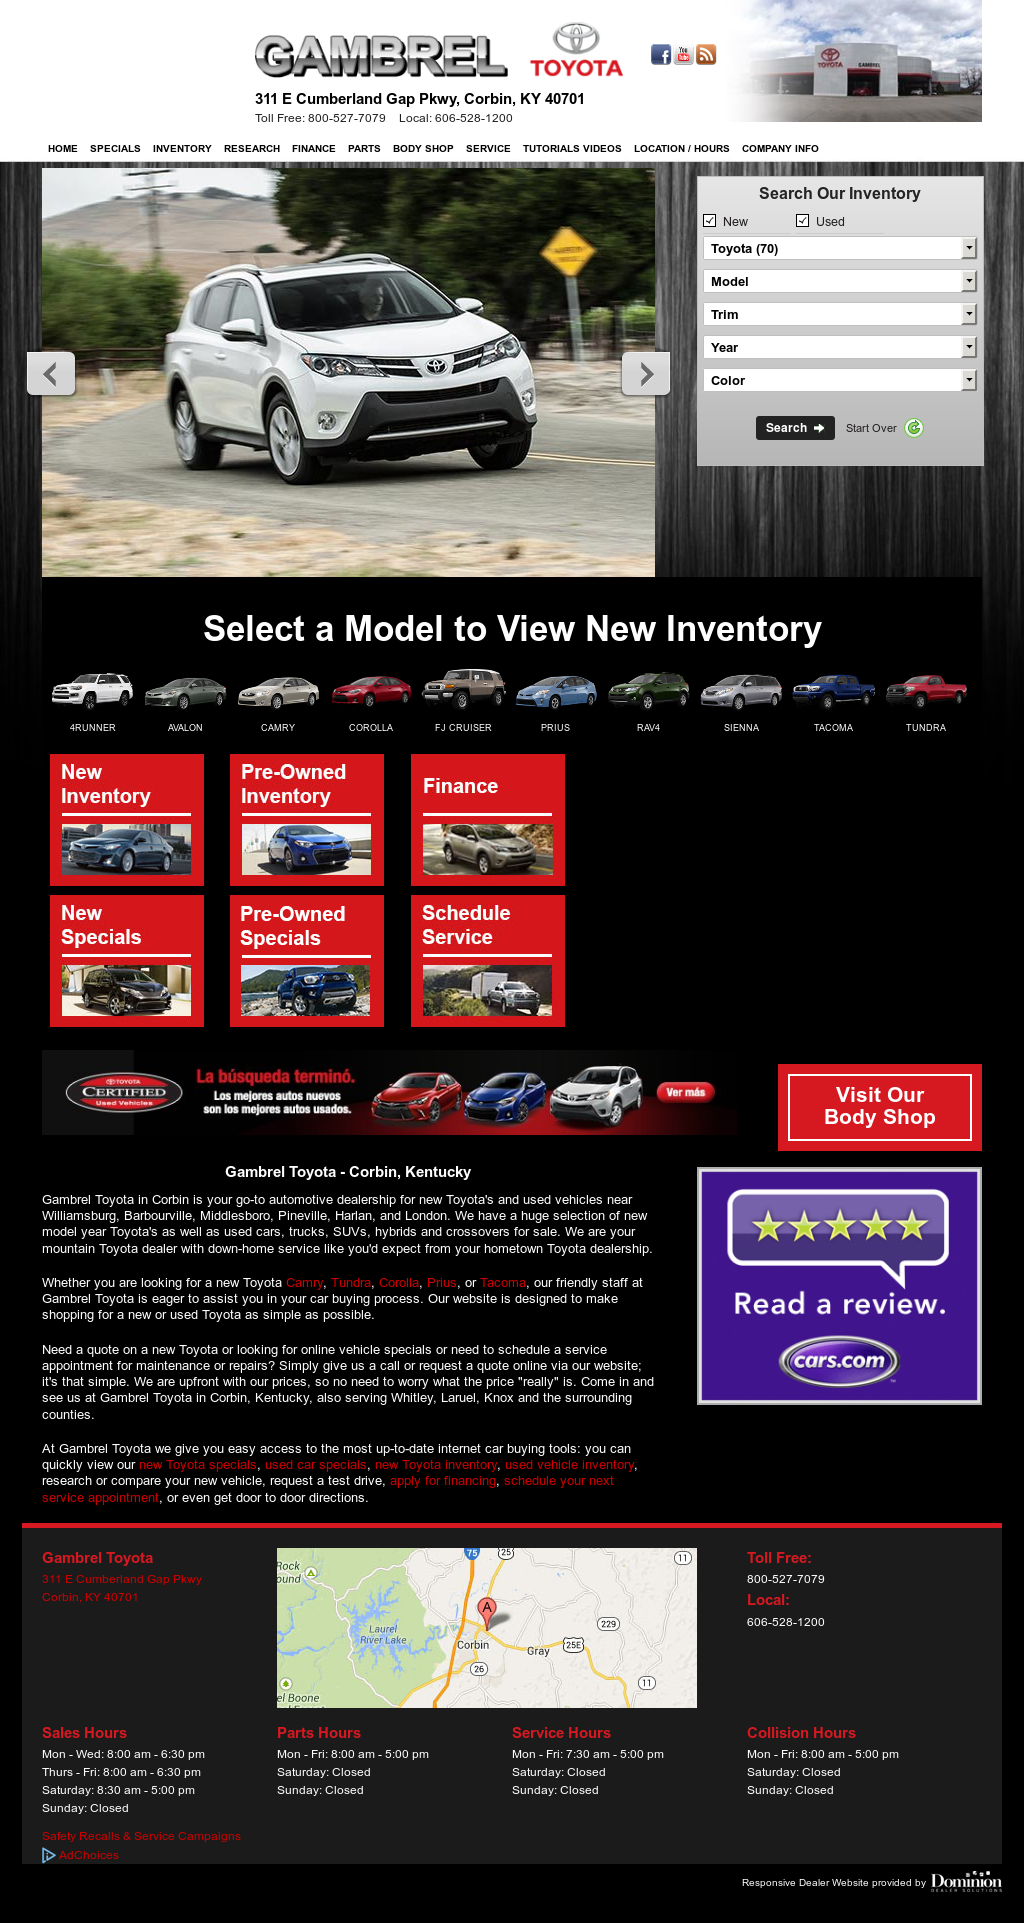 Awesome Gambrel Toyota Competitors, Revenue And Employees   Owler Company Profile